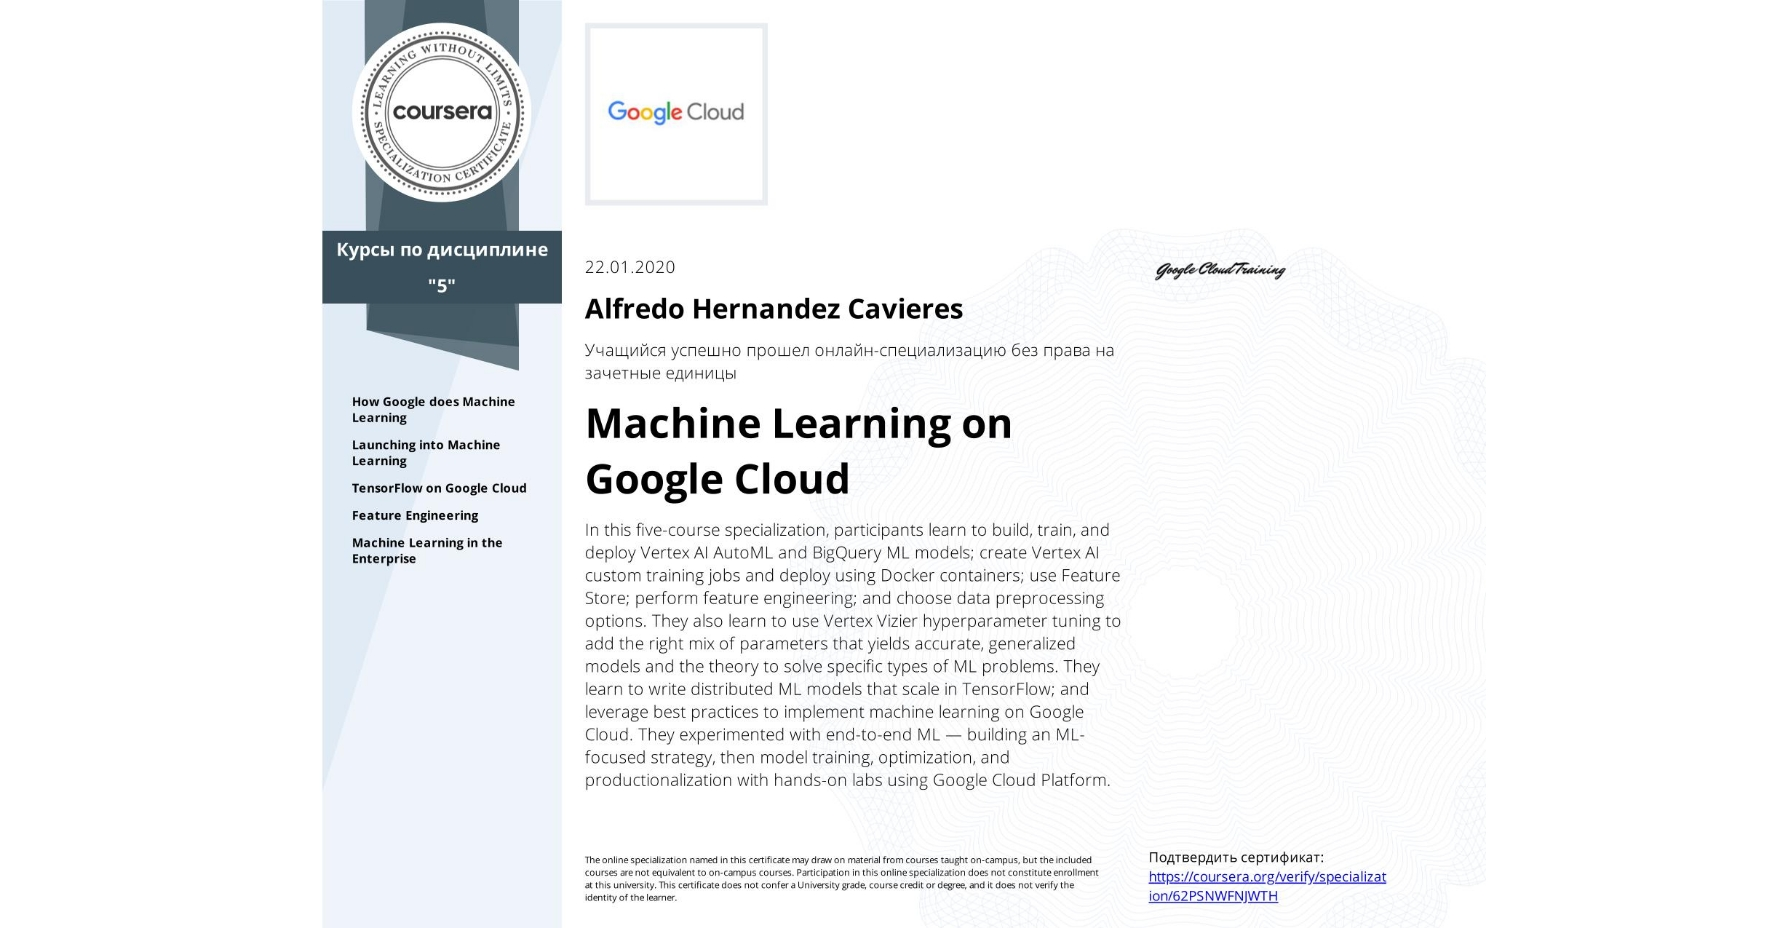 View certificate for Alfredo Hernandez Cavieres, Machine Learning with TensorFlow on Google Cloud Platform, offered through Coursera. This five-course online specialization teaches course participants how to write distributed machine learning models that scale in Tensorflow, scale out the training of those models. and offer high-performance predictions. Also featured is the conversion of raw data to features in a way that allows ML to learn important characteristics from the data and bring human insight to bear on the problem. It also teaches how to incorporate the right mix of parameters that yields accurate, generalized models and knowledge of the theory to solve specific types of ML problems. Course participants experimented with end-to-end ML, starting from building an ML-focused strategy and progressing into model training, optimization, and productionalization with hands-on labs using Google Cloud Platform.